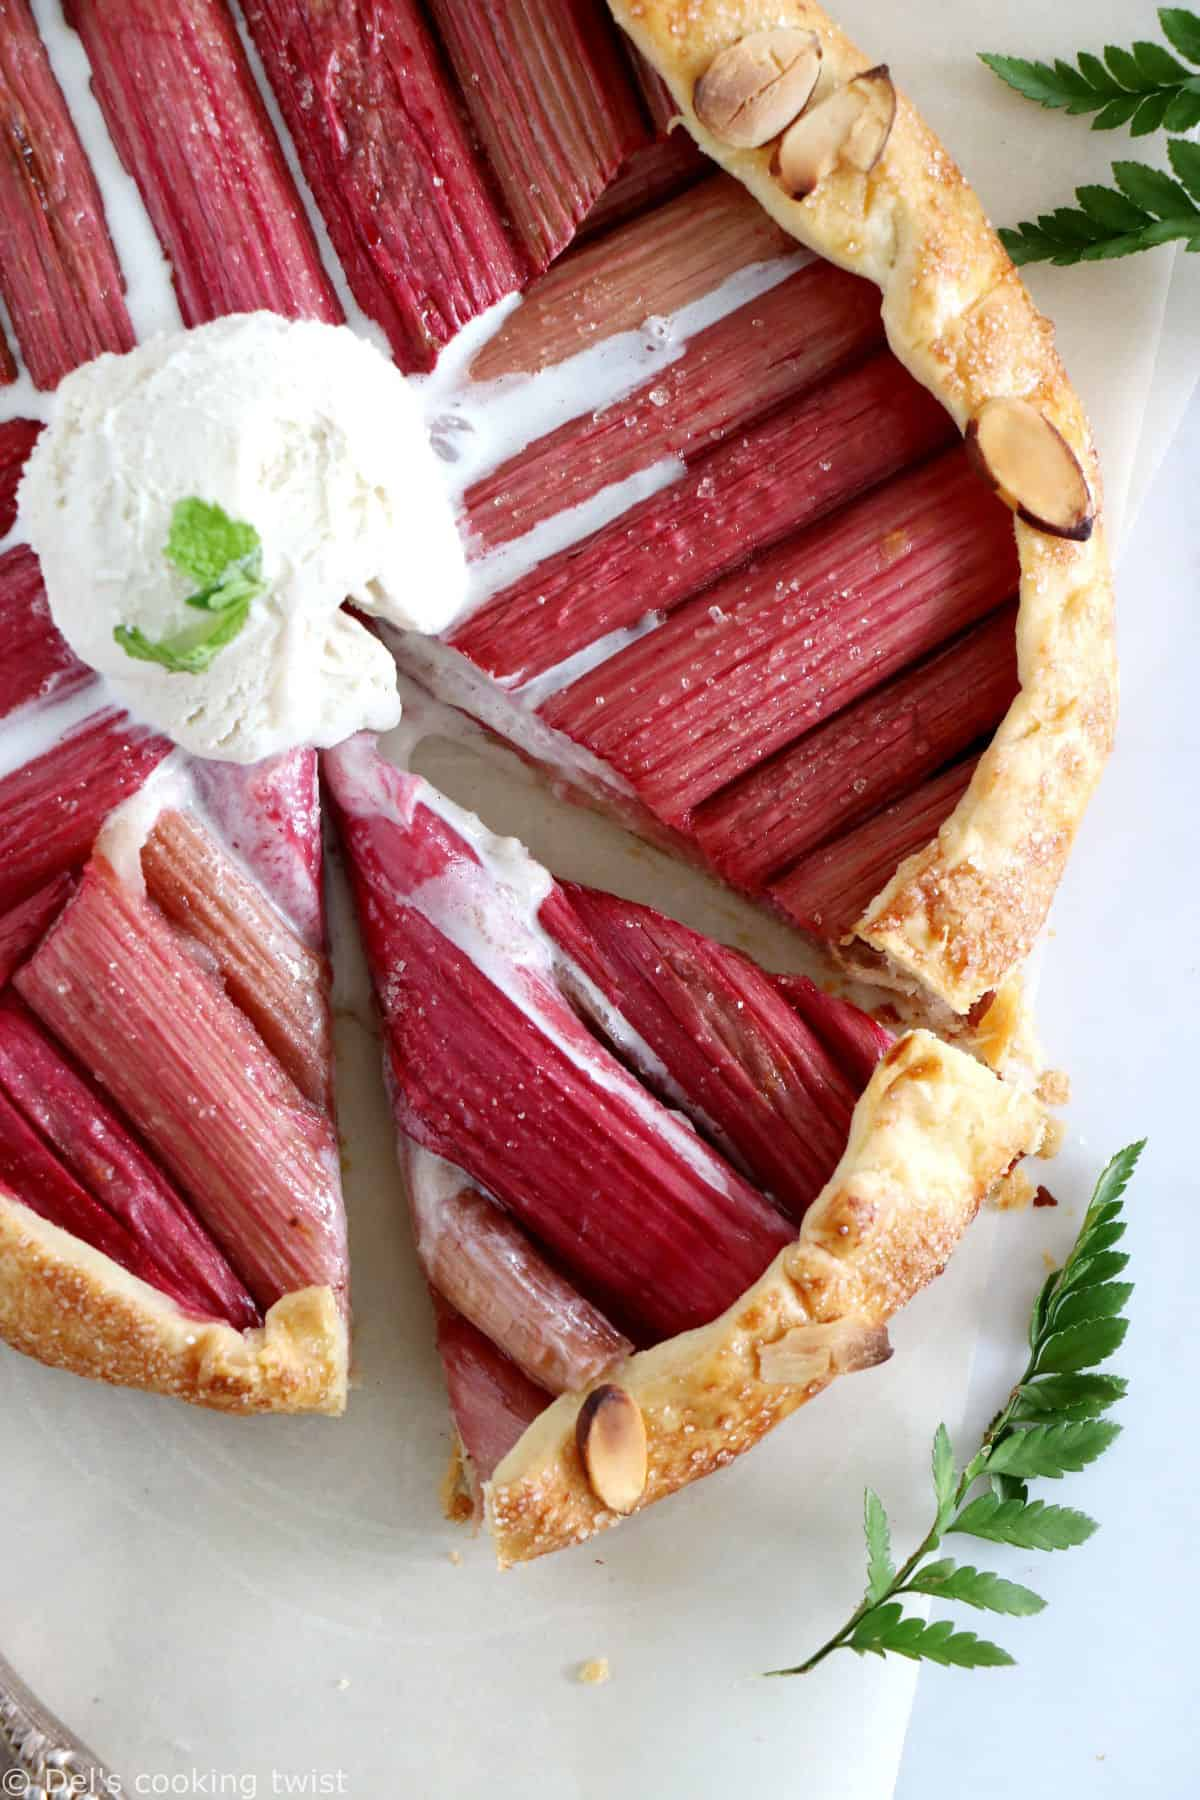 Rustic Geometric Rhubarb Tart. Fun, entertaining and delicious, this rhubarb galette will for sure impress your guests.